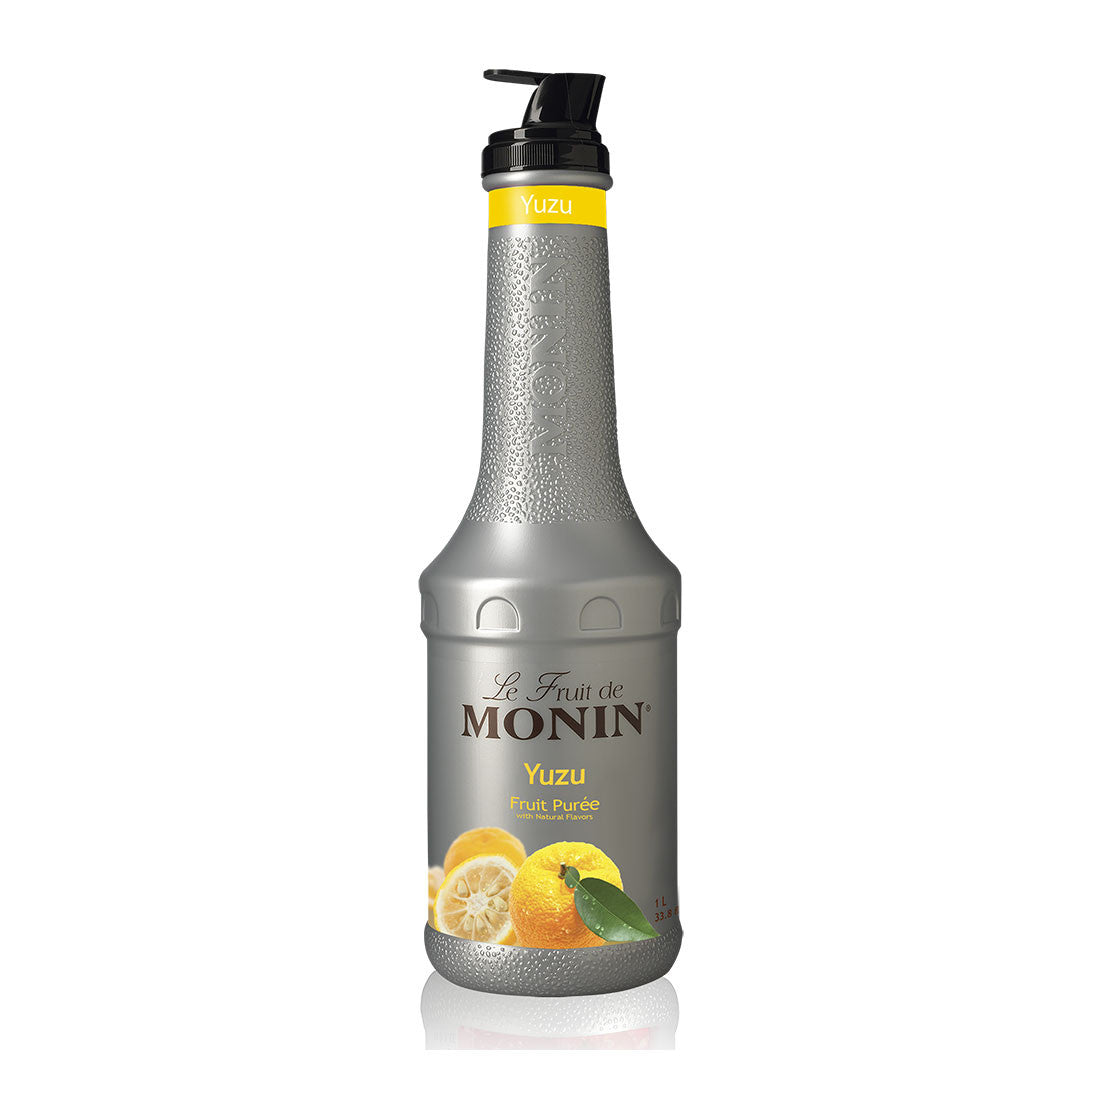 Monin Puree Yuzu -1000ml Liqueurs & Syrups - Bevtools Bar and Beverage Tools | Alcohol and Liquor Delivery Makati, Metro Manila, Philippines